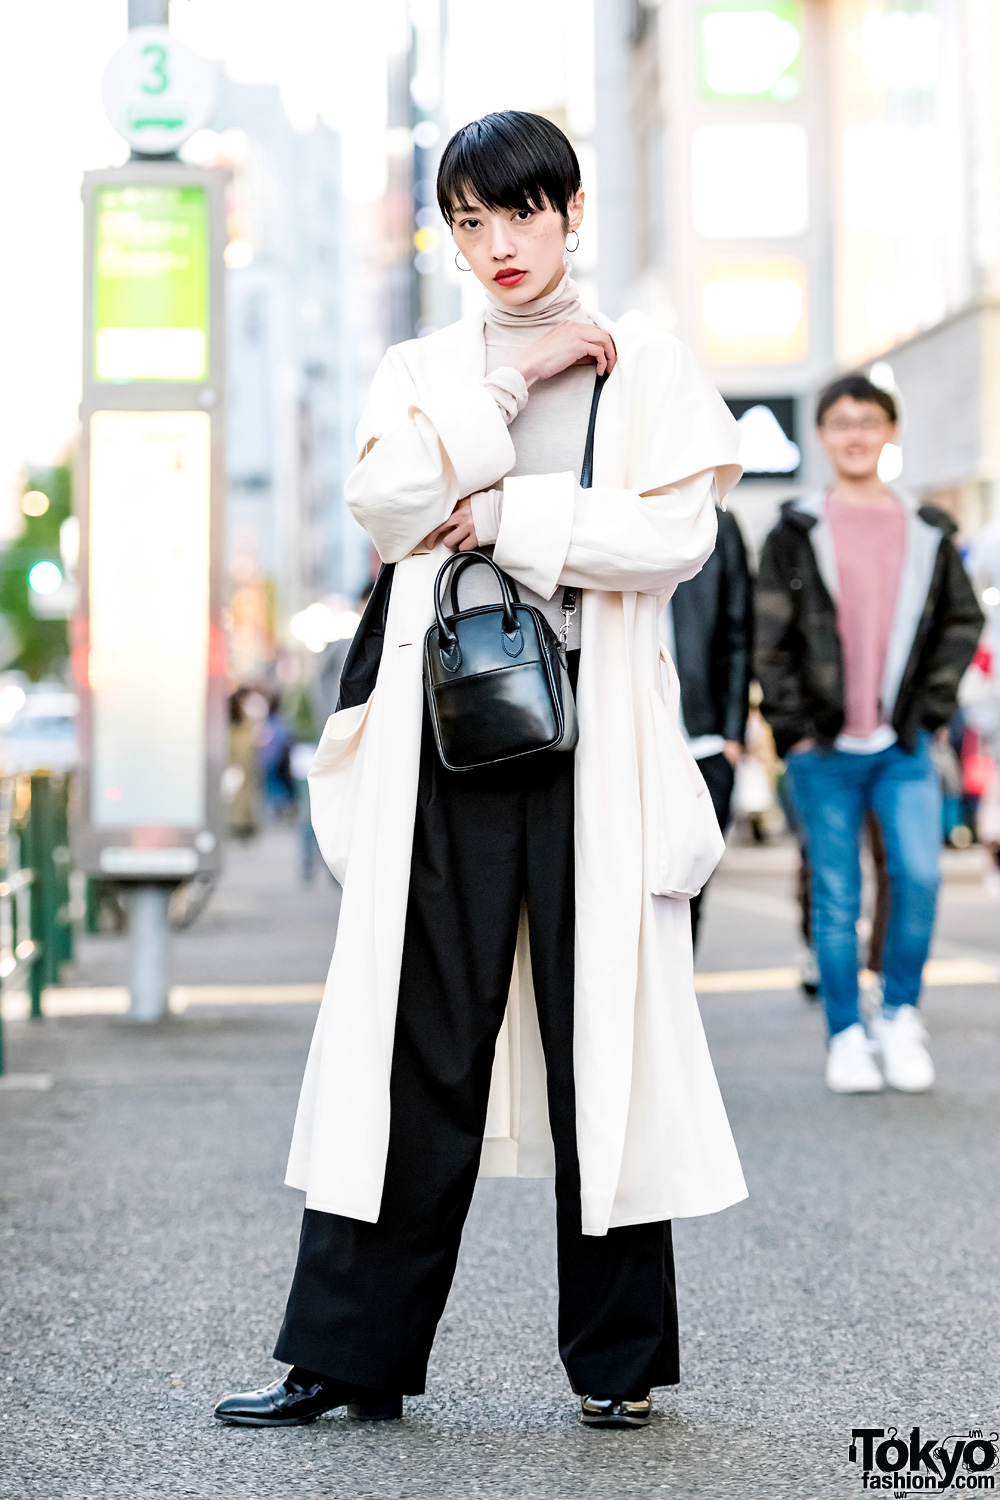 Japanese Model In Minimalist Street Style W Rito Maxi Coat Comme Des Garcons Leather Bag